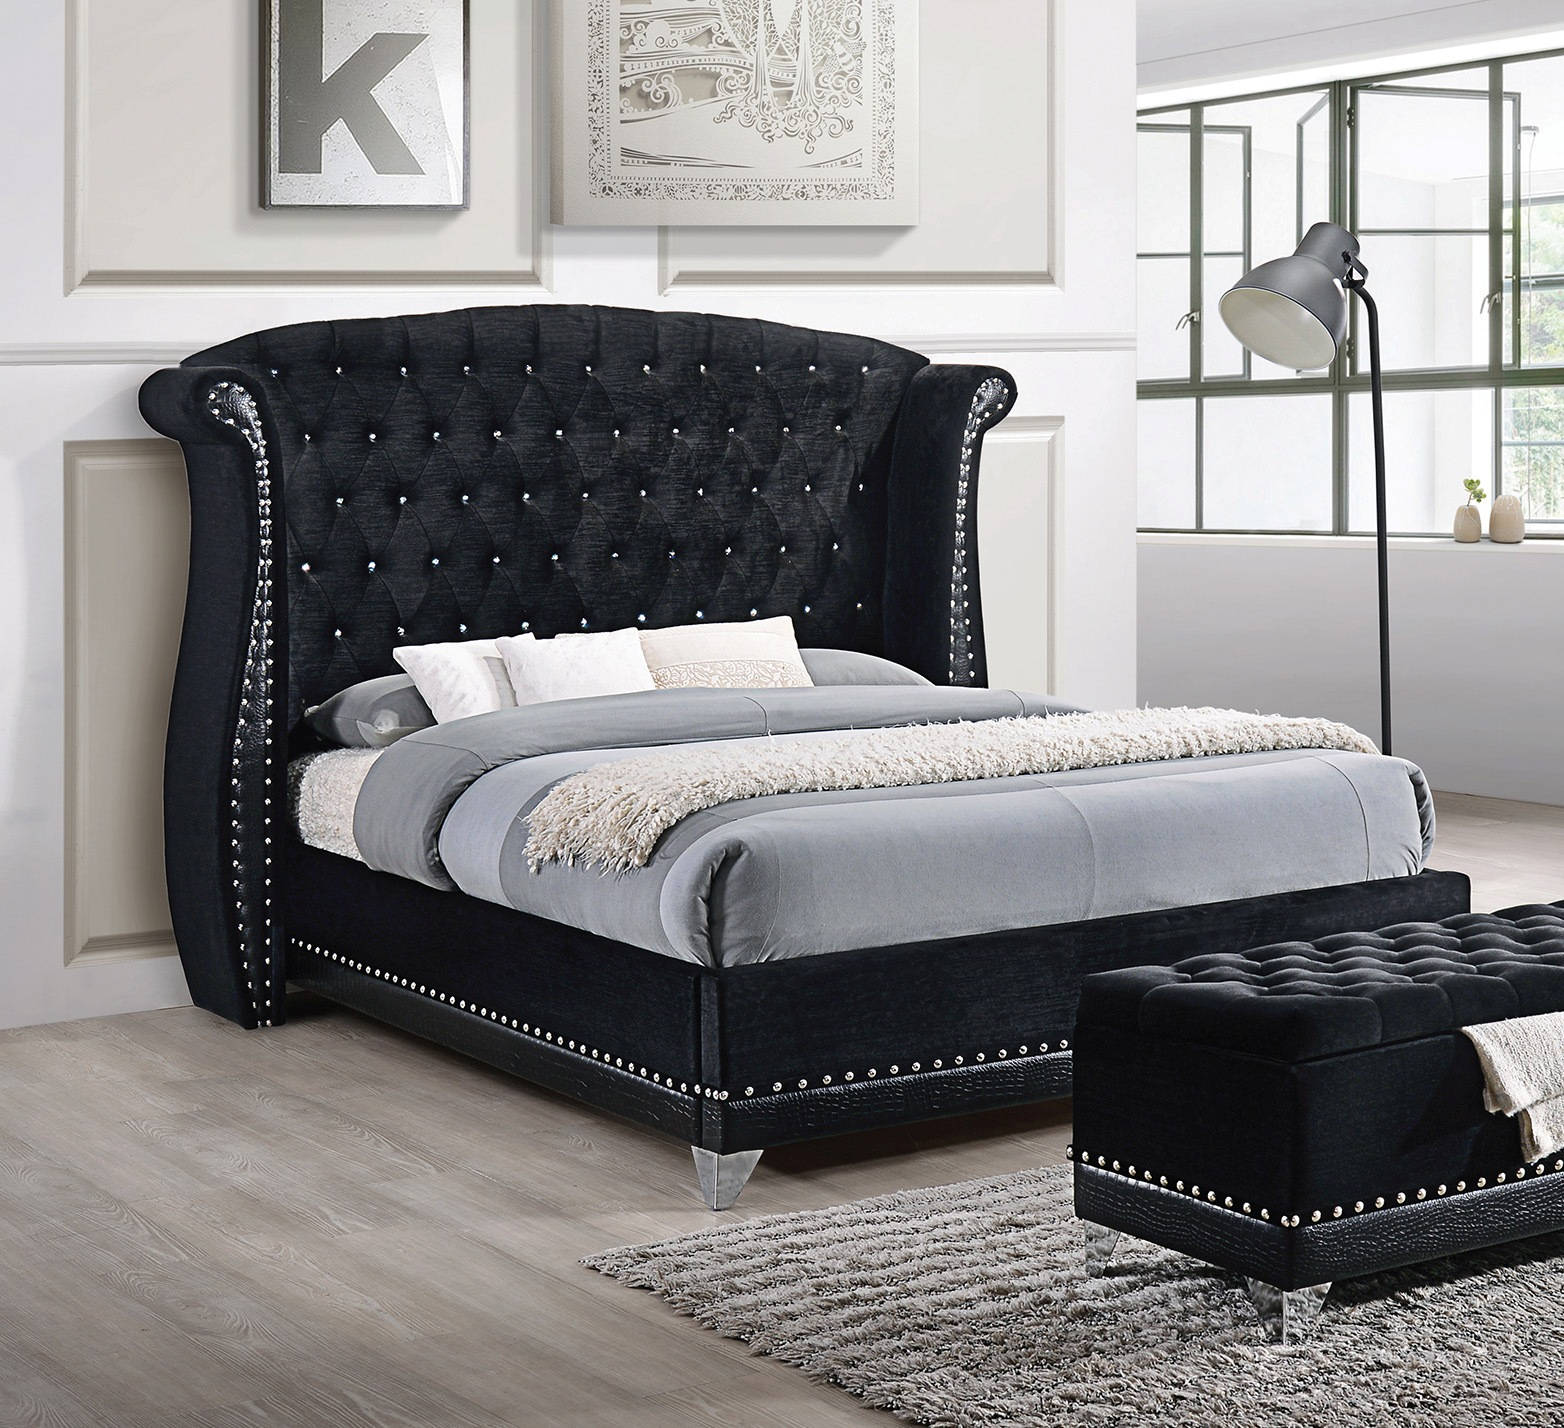 Coaster Furniture Barzini Black Velvet Upholstered King Bed The